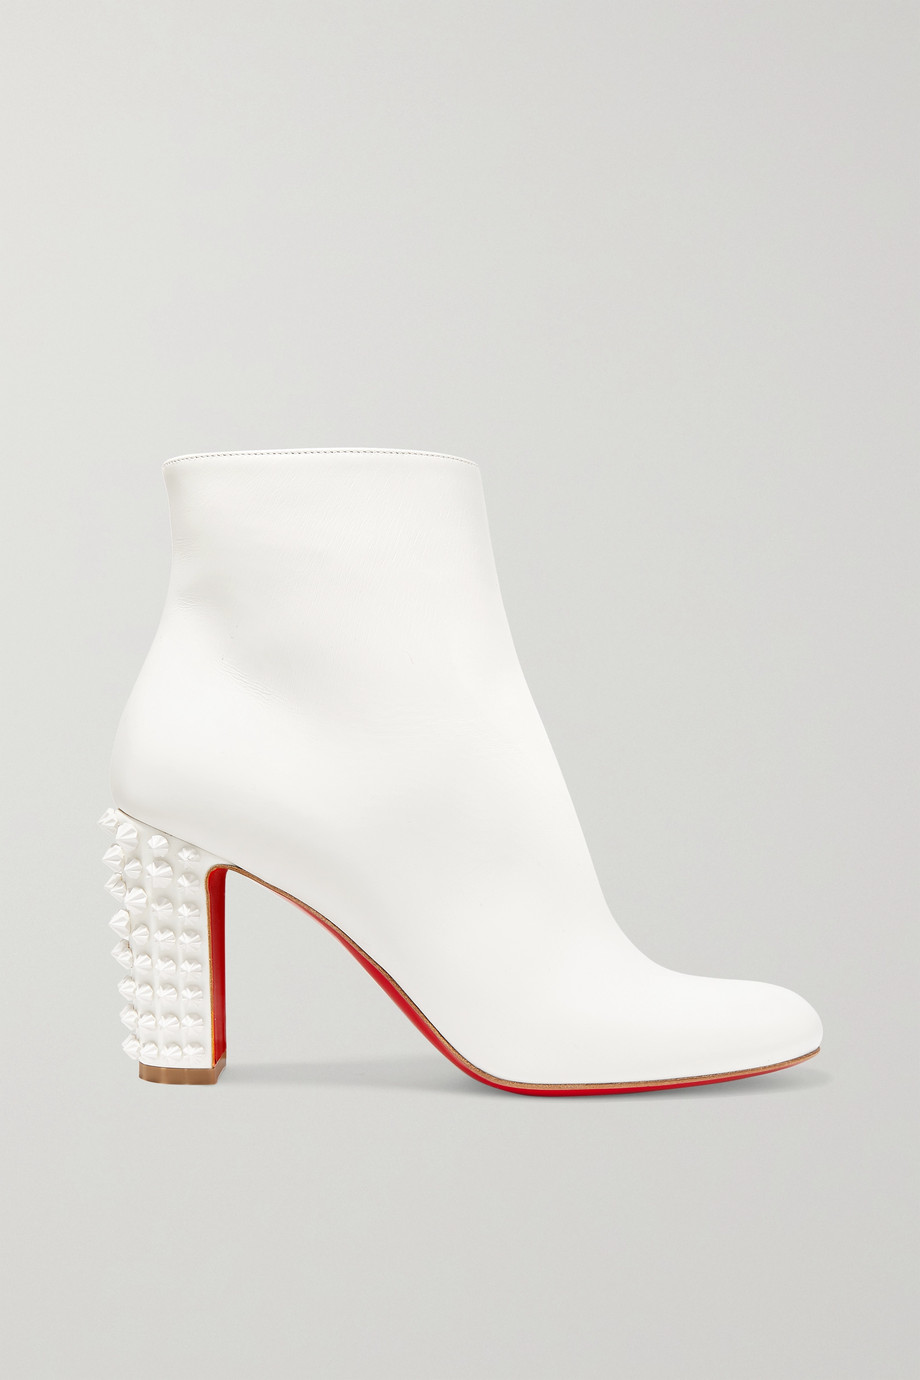 Christian Louboutin Suzi Folk 85 spiked leather ankle boots